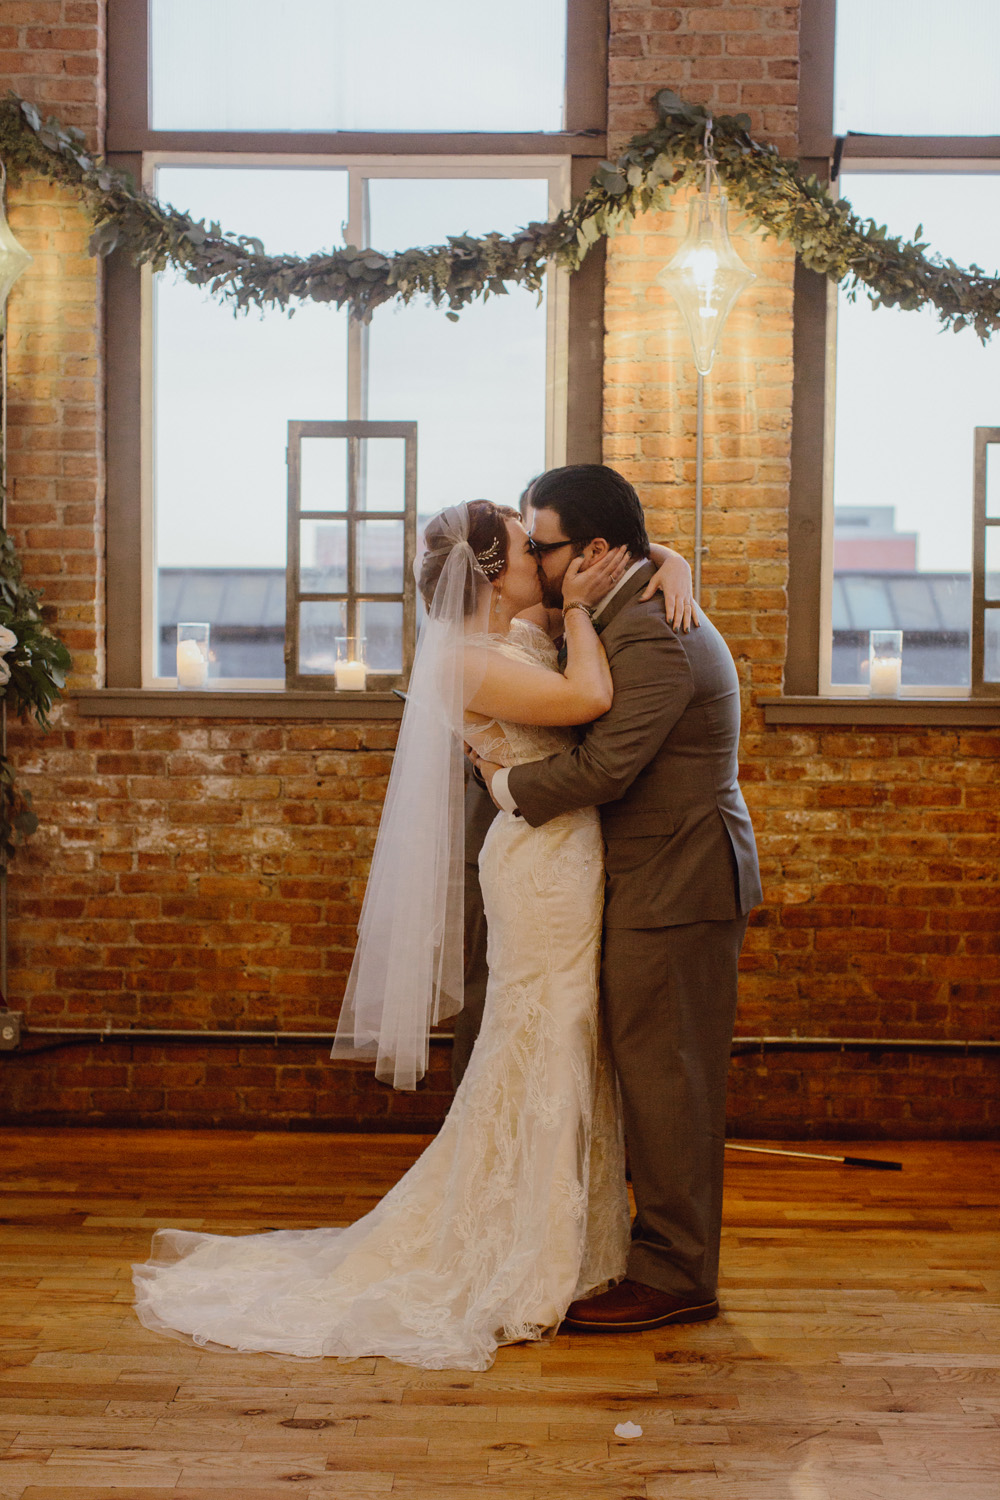 chicago-wedding-photography-at-city-view-loft-by-megan-saul-photography-ceremony-154-of-166